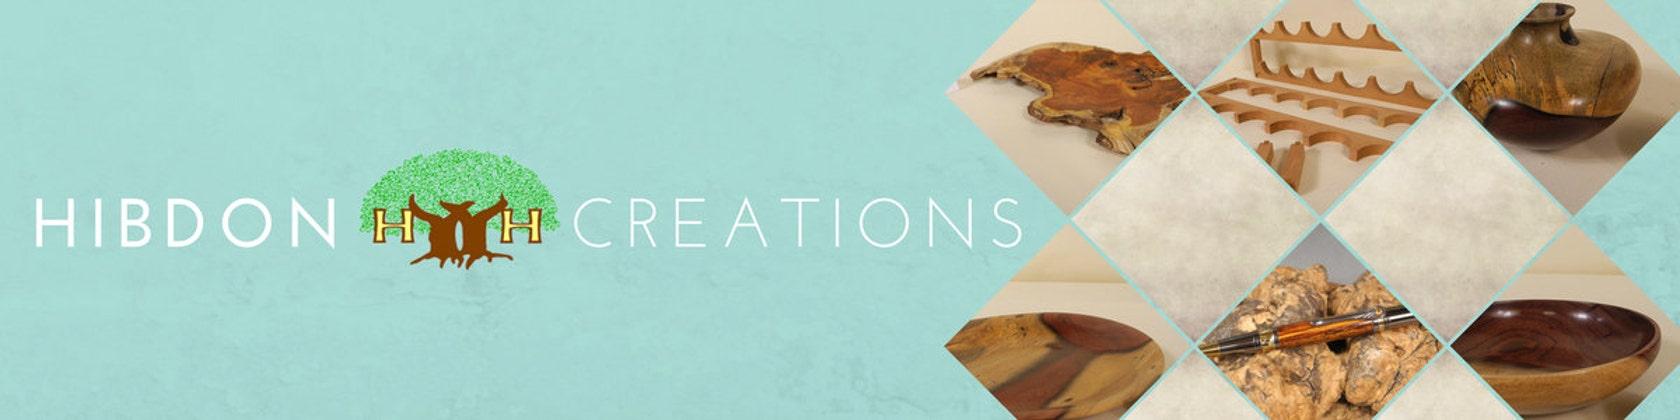 Hibdon Creations With Art By Isaac Ludwig By Hibdoncreations